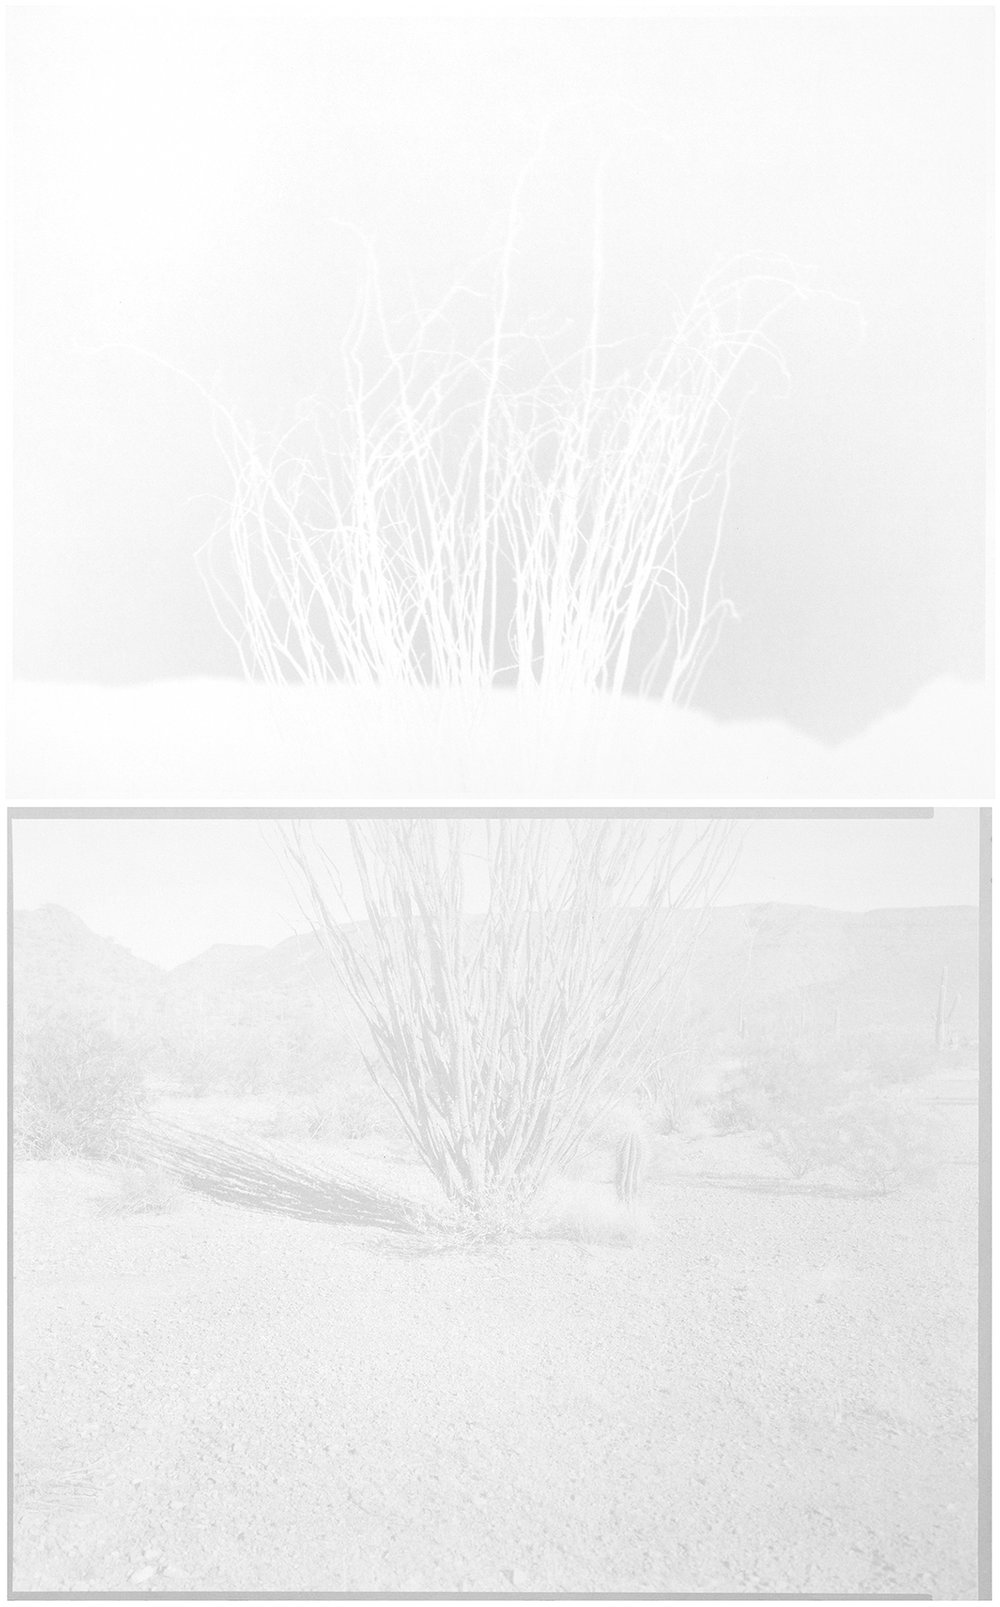 scott b. davis   ocotillo (arizona upland),   2013   unique paper negative palladium/platinum prints, diptych   32 x 20 inches (each 16 x 20 inches)